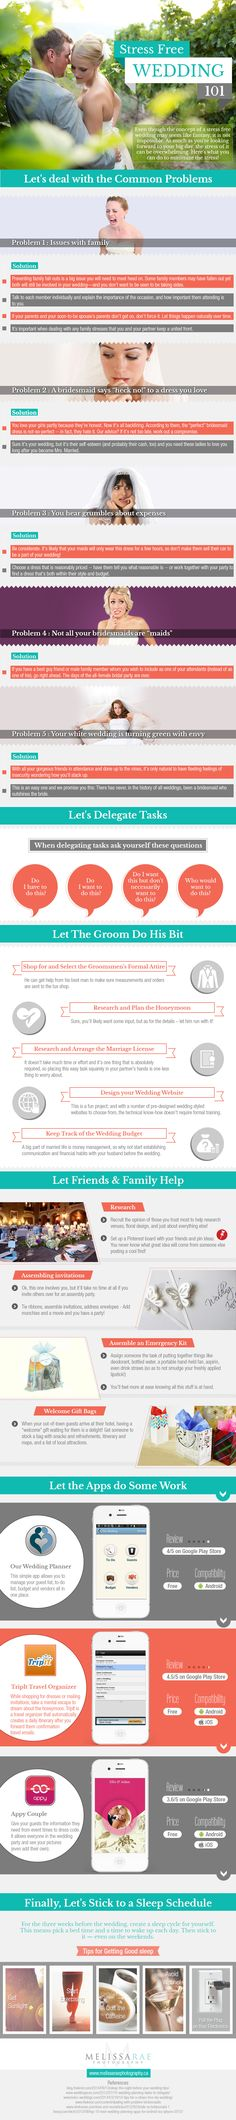 So many Brides will experience these problems while wedding planning. Beat them to the punch and know how to deal with wedding stress before it happens! -- infographic by Melissa Rae Photography Food Truck Wedding, Wedding Menu, Free Wedding, Perfect Wedding, Diy Wedding, Trendy Wedding, Wedding Hair, Wedding Decor, Wedding Ideas